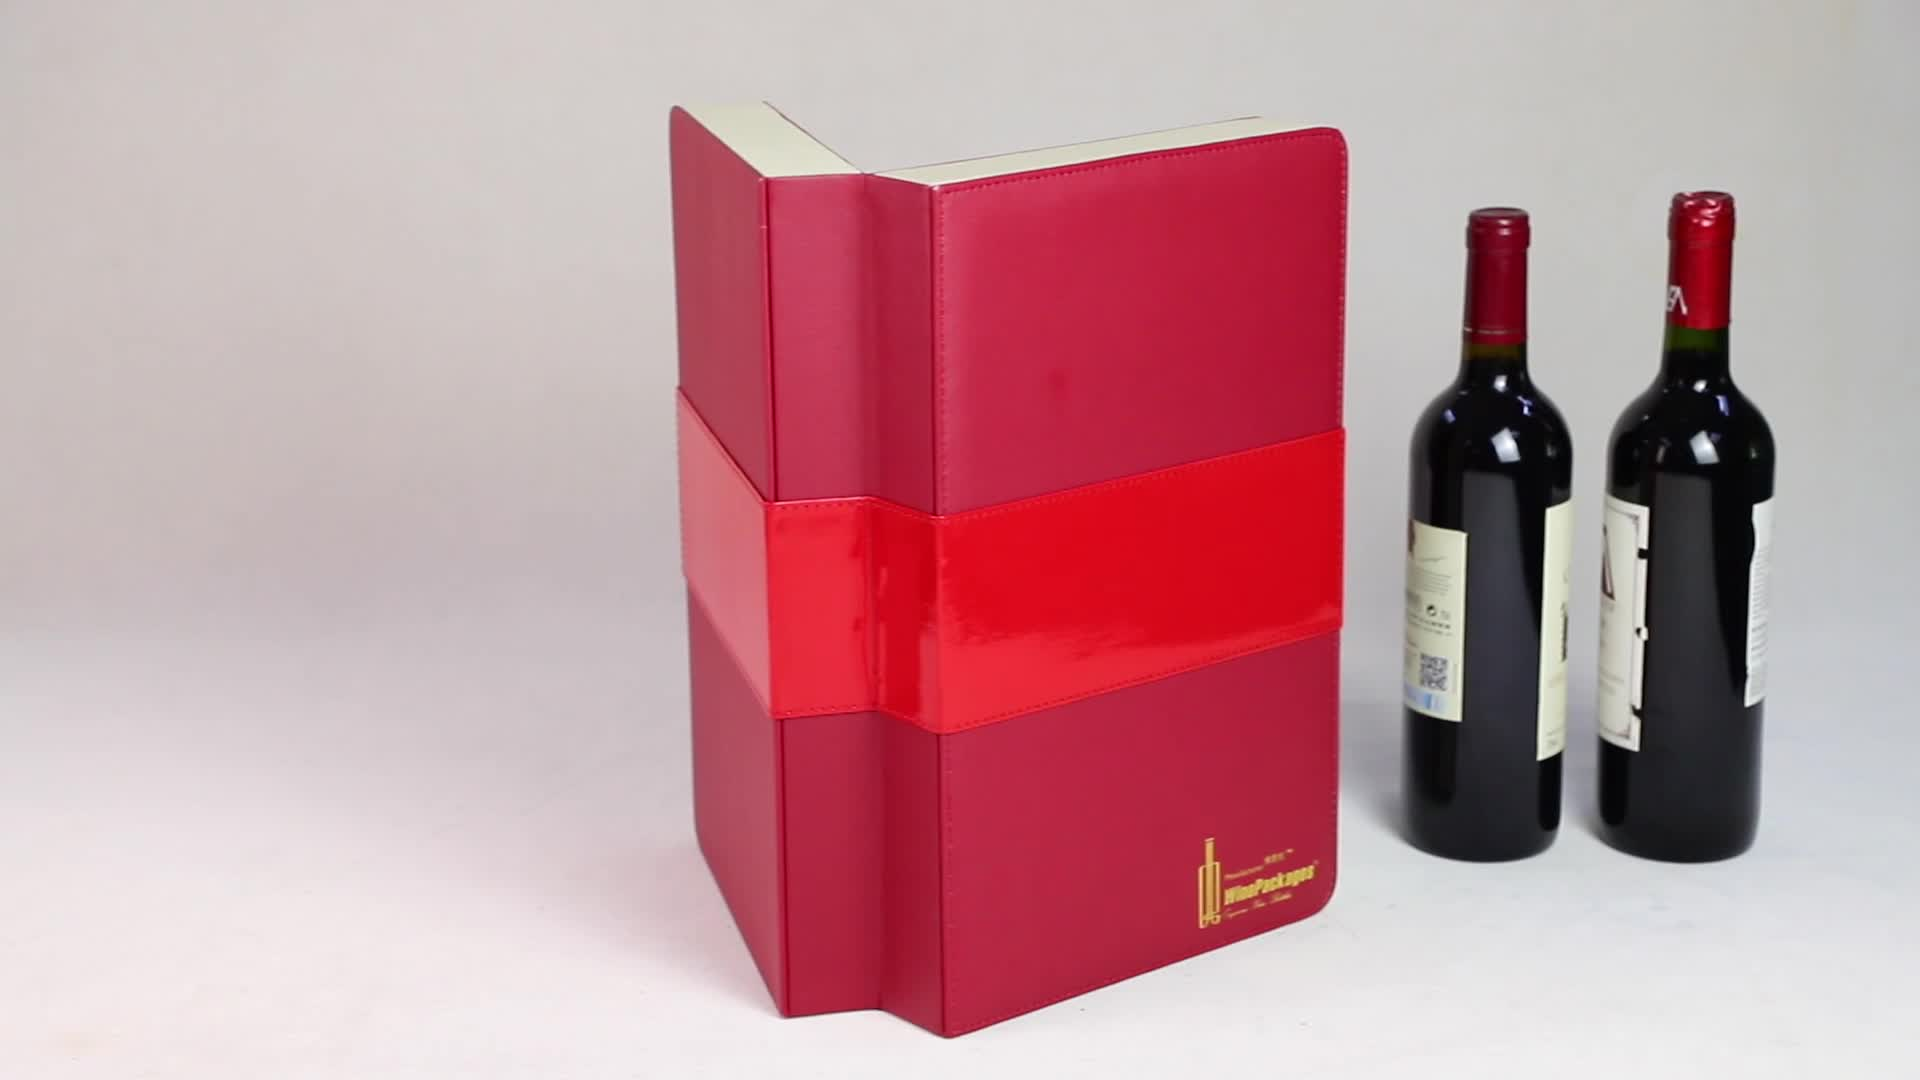 Luxury high quality custom cardboard christmas wine 2 bottle wine box with pvc window fabric wine package